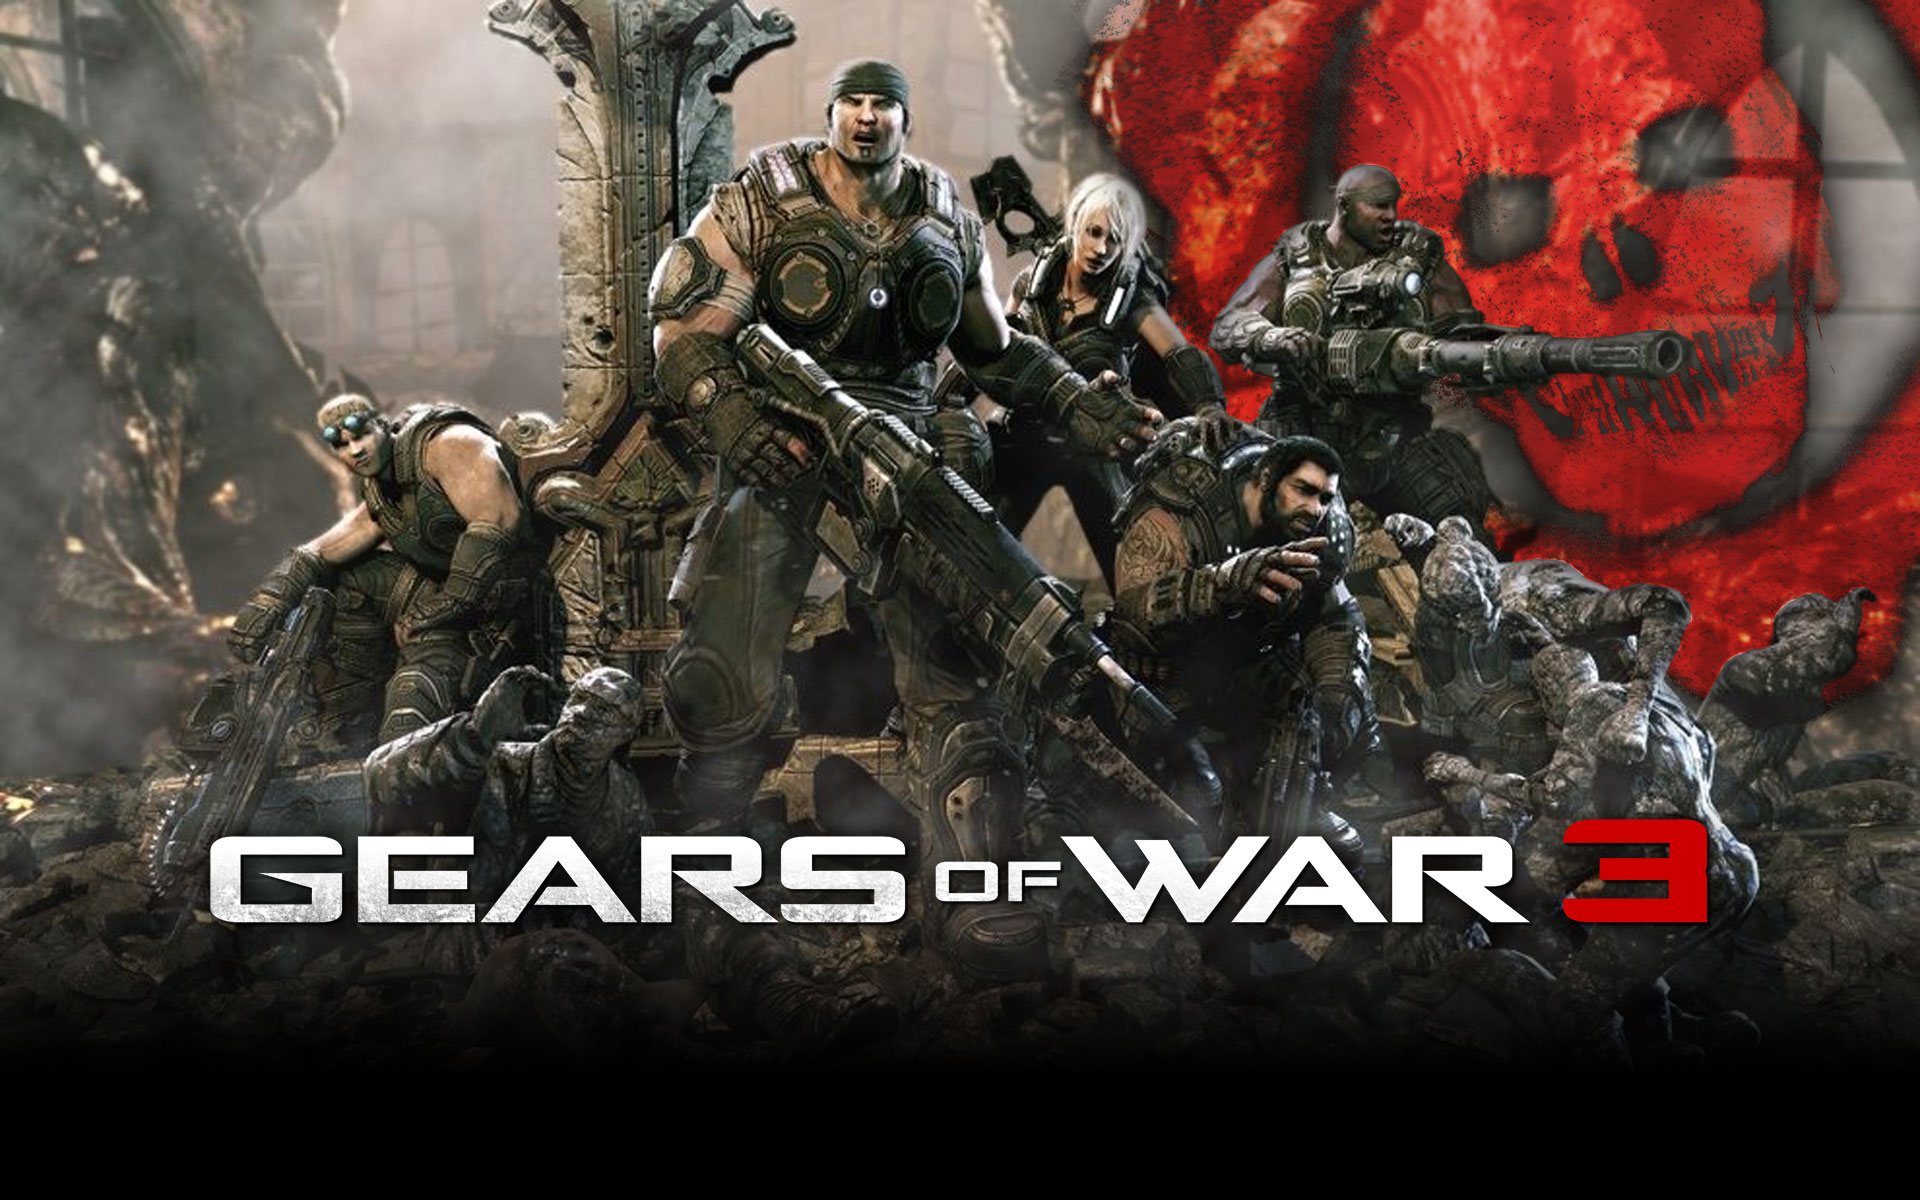 gears-of-war-3-group